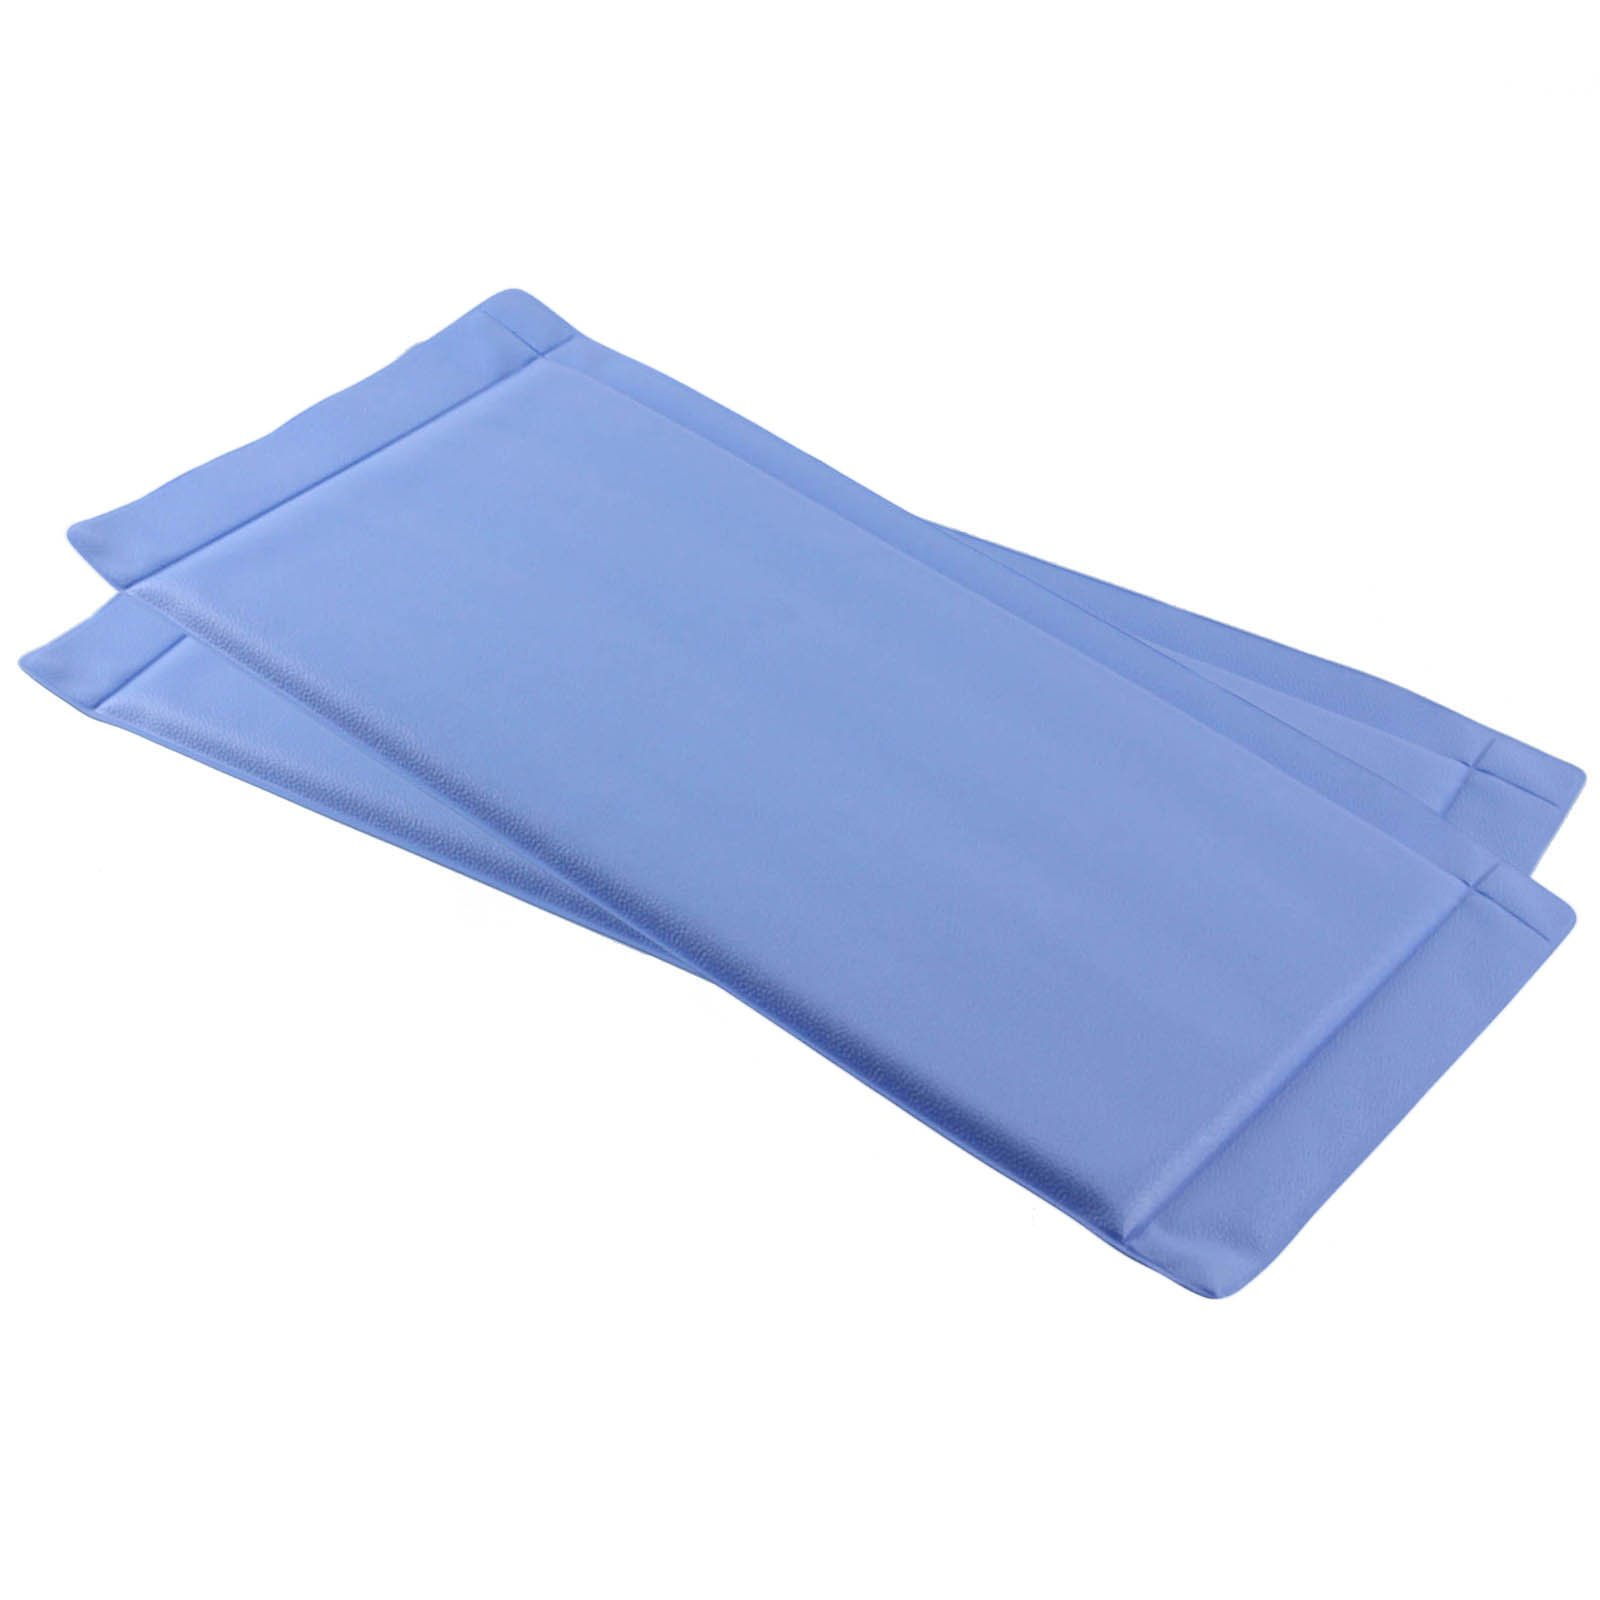 Spares2go Defrost Fridge Freezer Mat Durable Anti-Frost Pad - Prevents Frost & Ice Build up (Pack of 2)